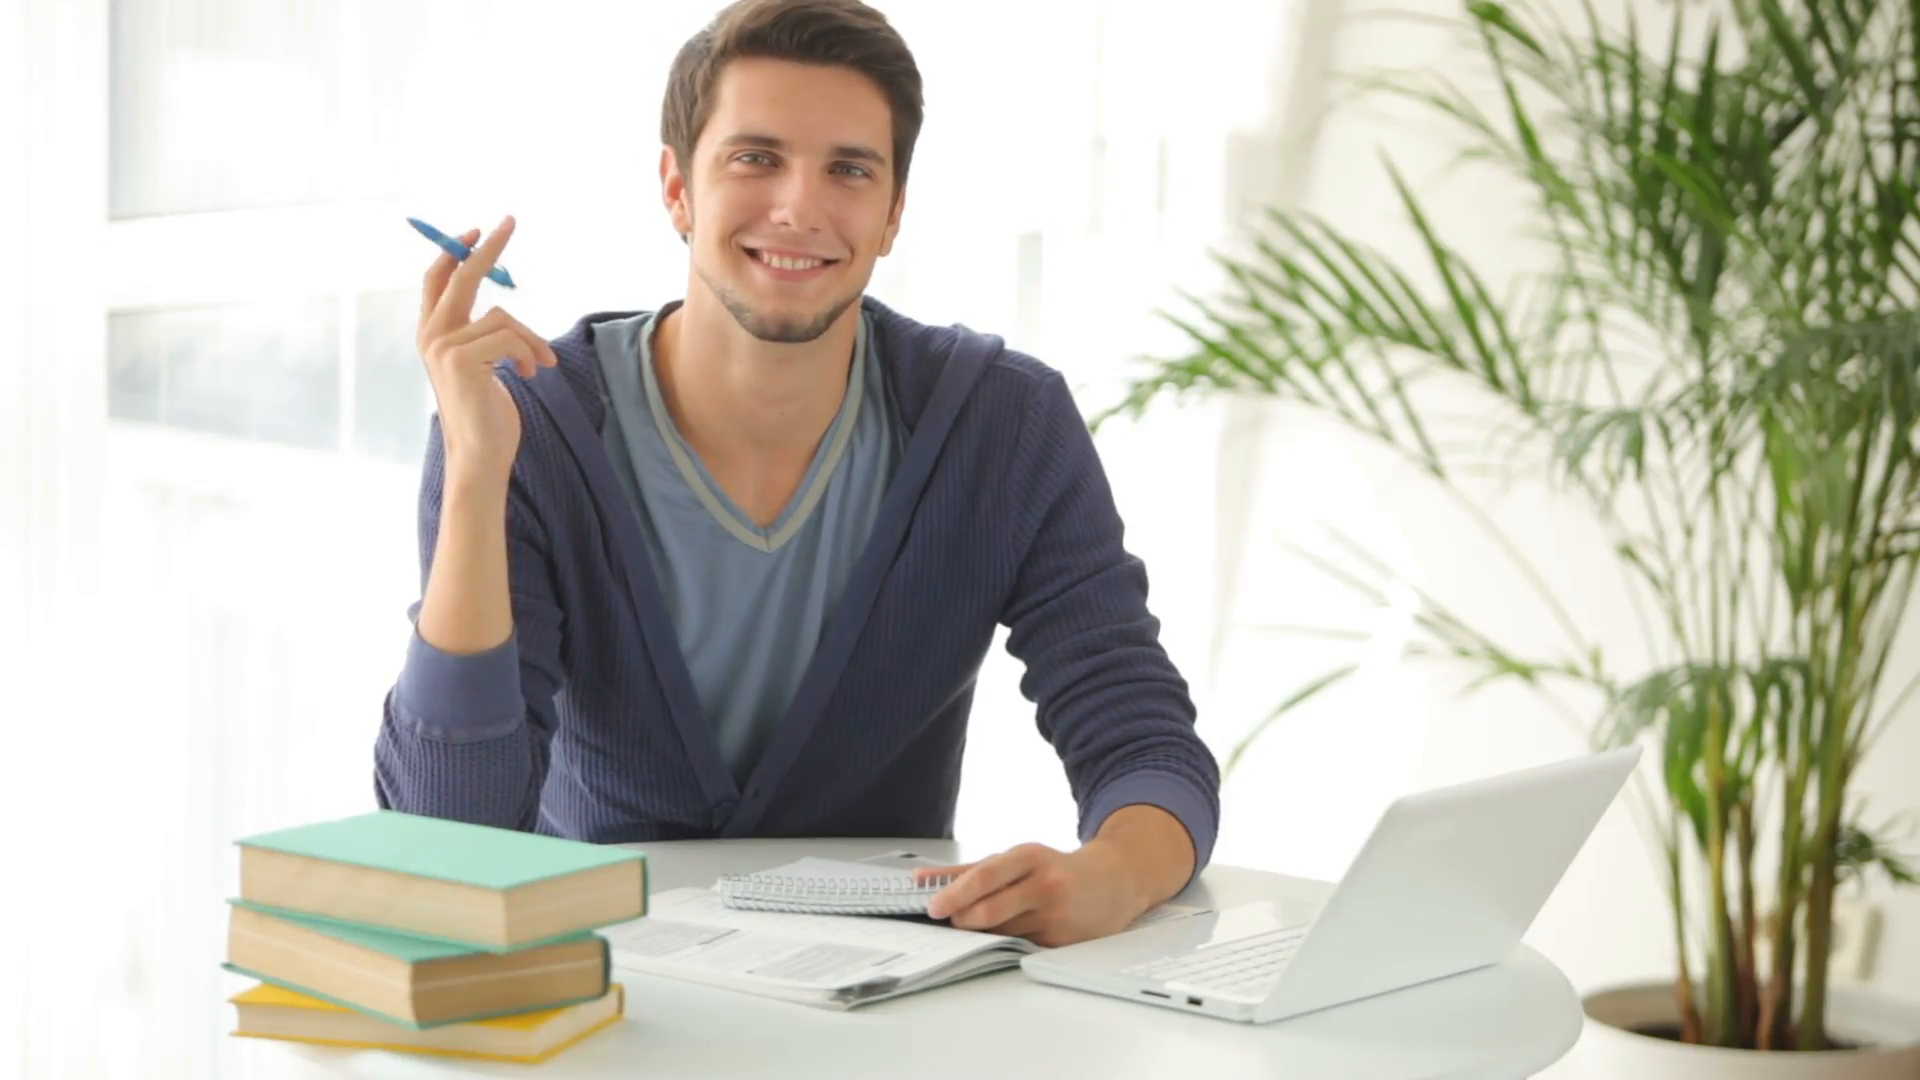 young-man-sitting-at-table-studying-with-books-and-laptop_vjnzszvrg__F0000